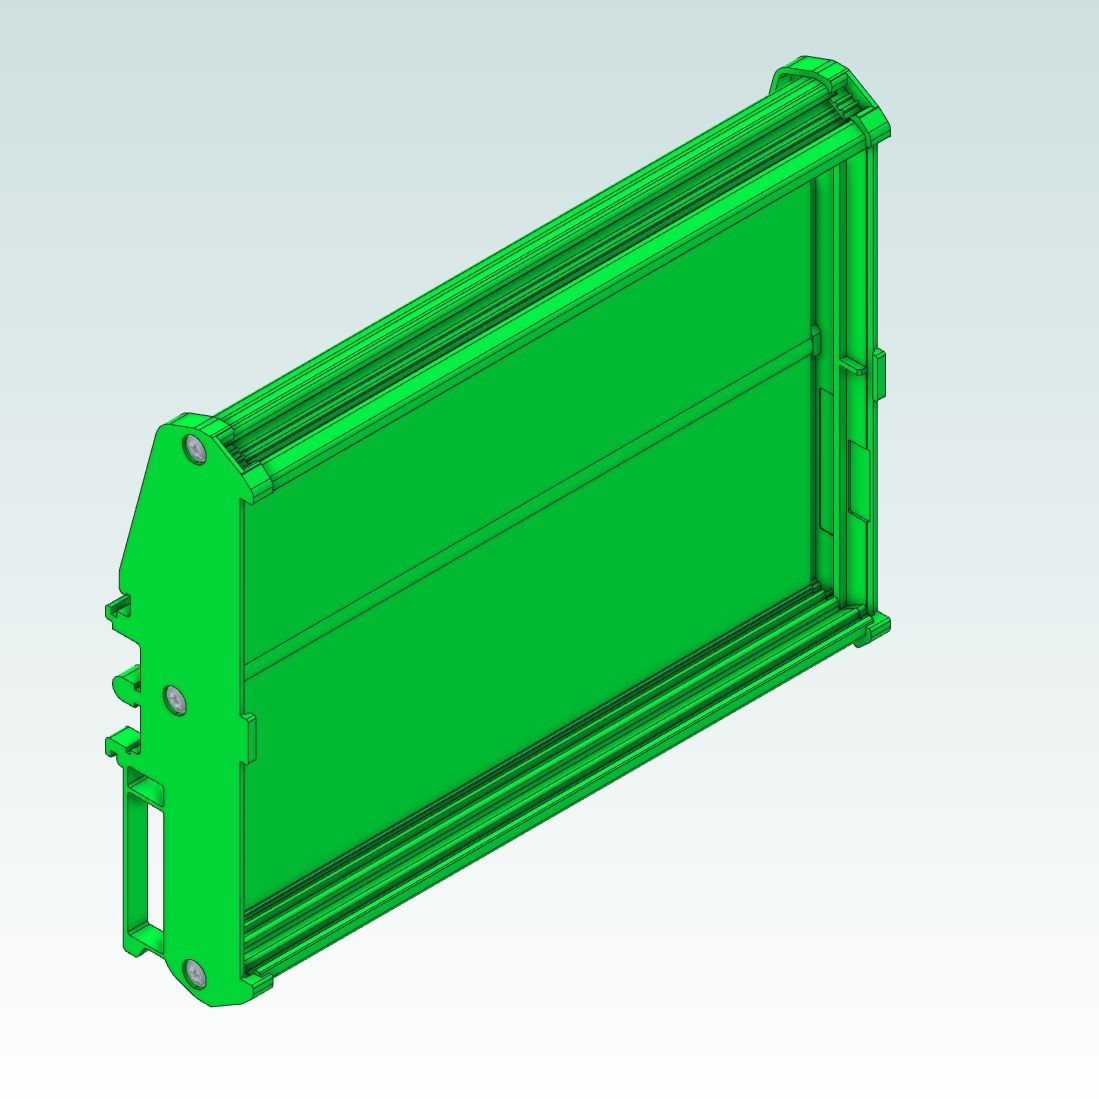 dinrail mount for rly8 io extension interface 108x160mm